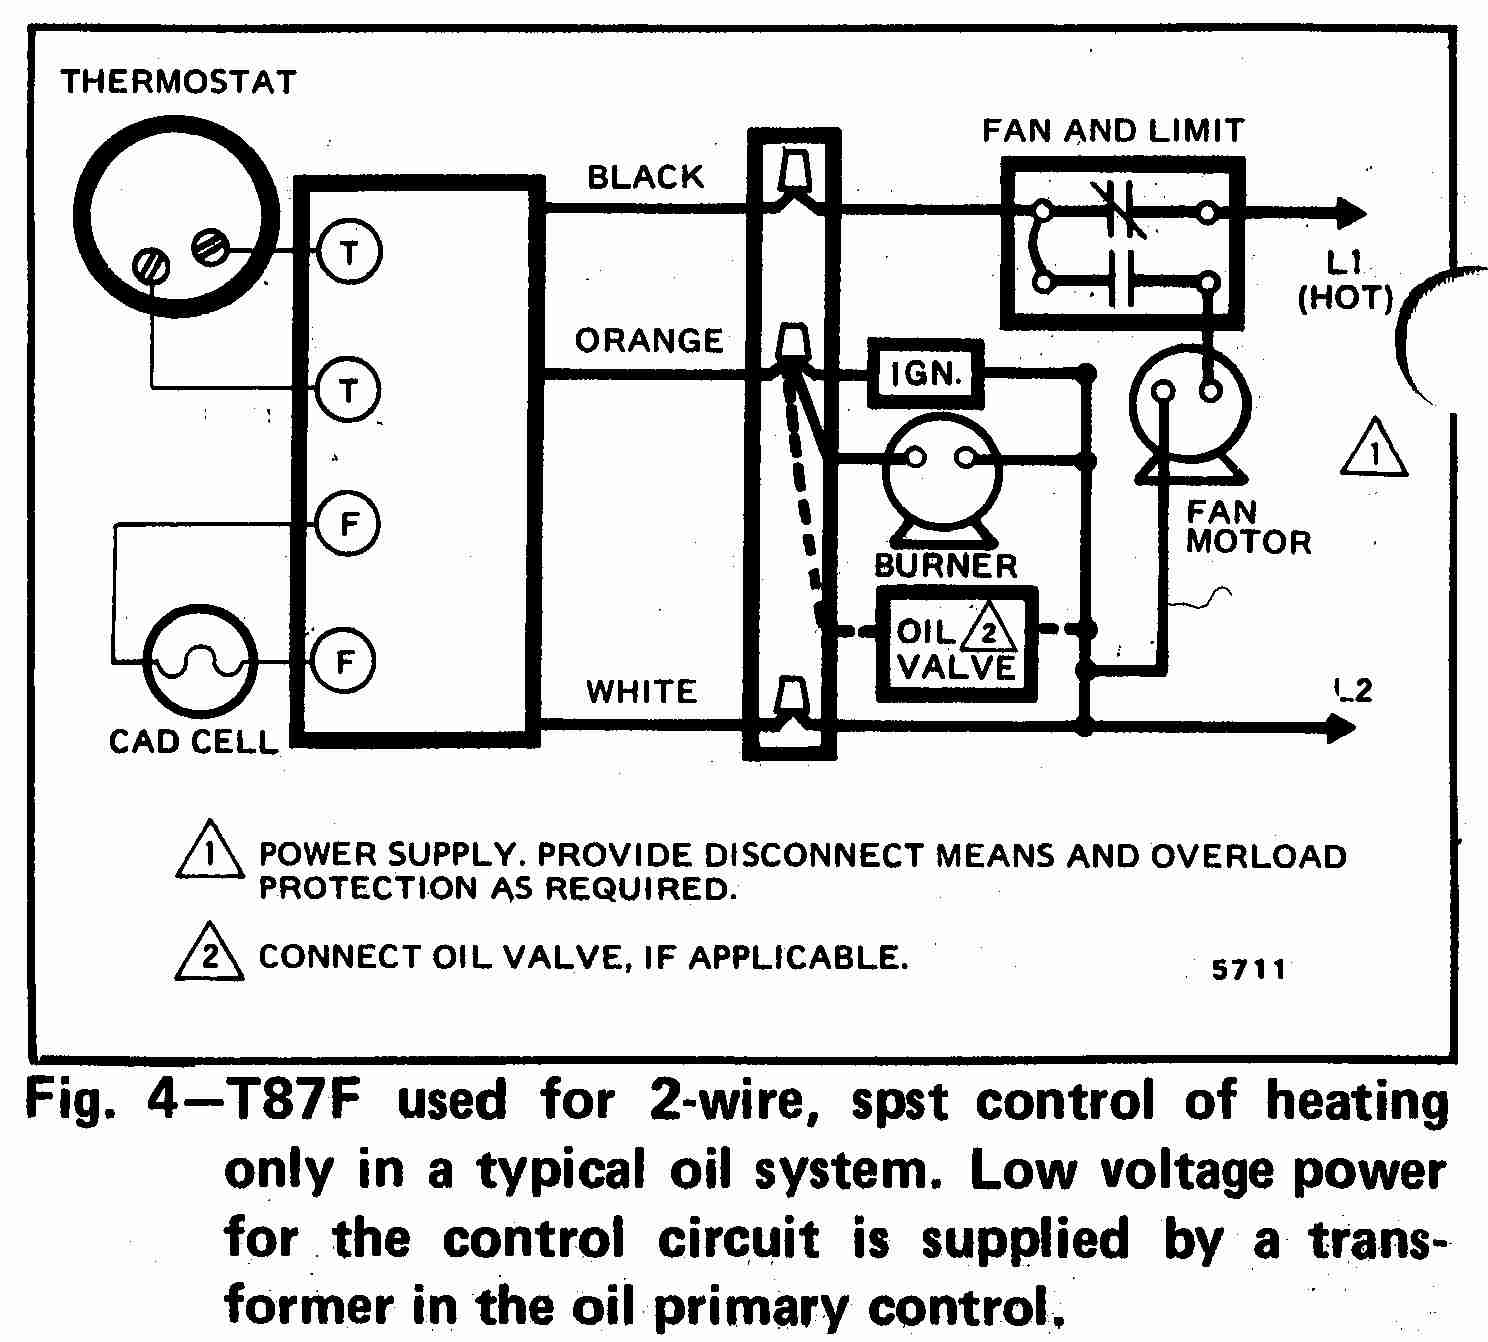 TT_T87F_0002_2W_DJF room thermostat wiring diagrams for hvac systems Control Panel Electrical Wiring Basics at gsmx.co